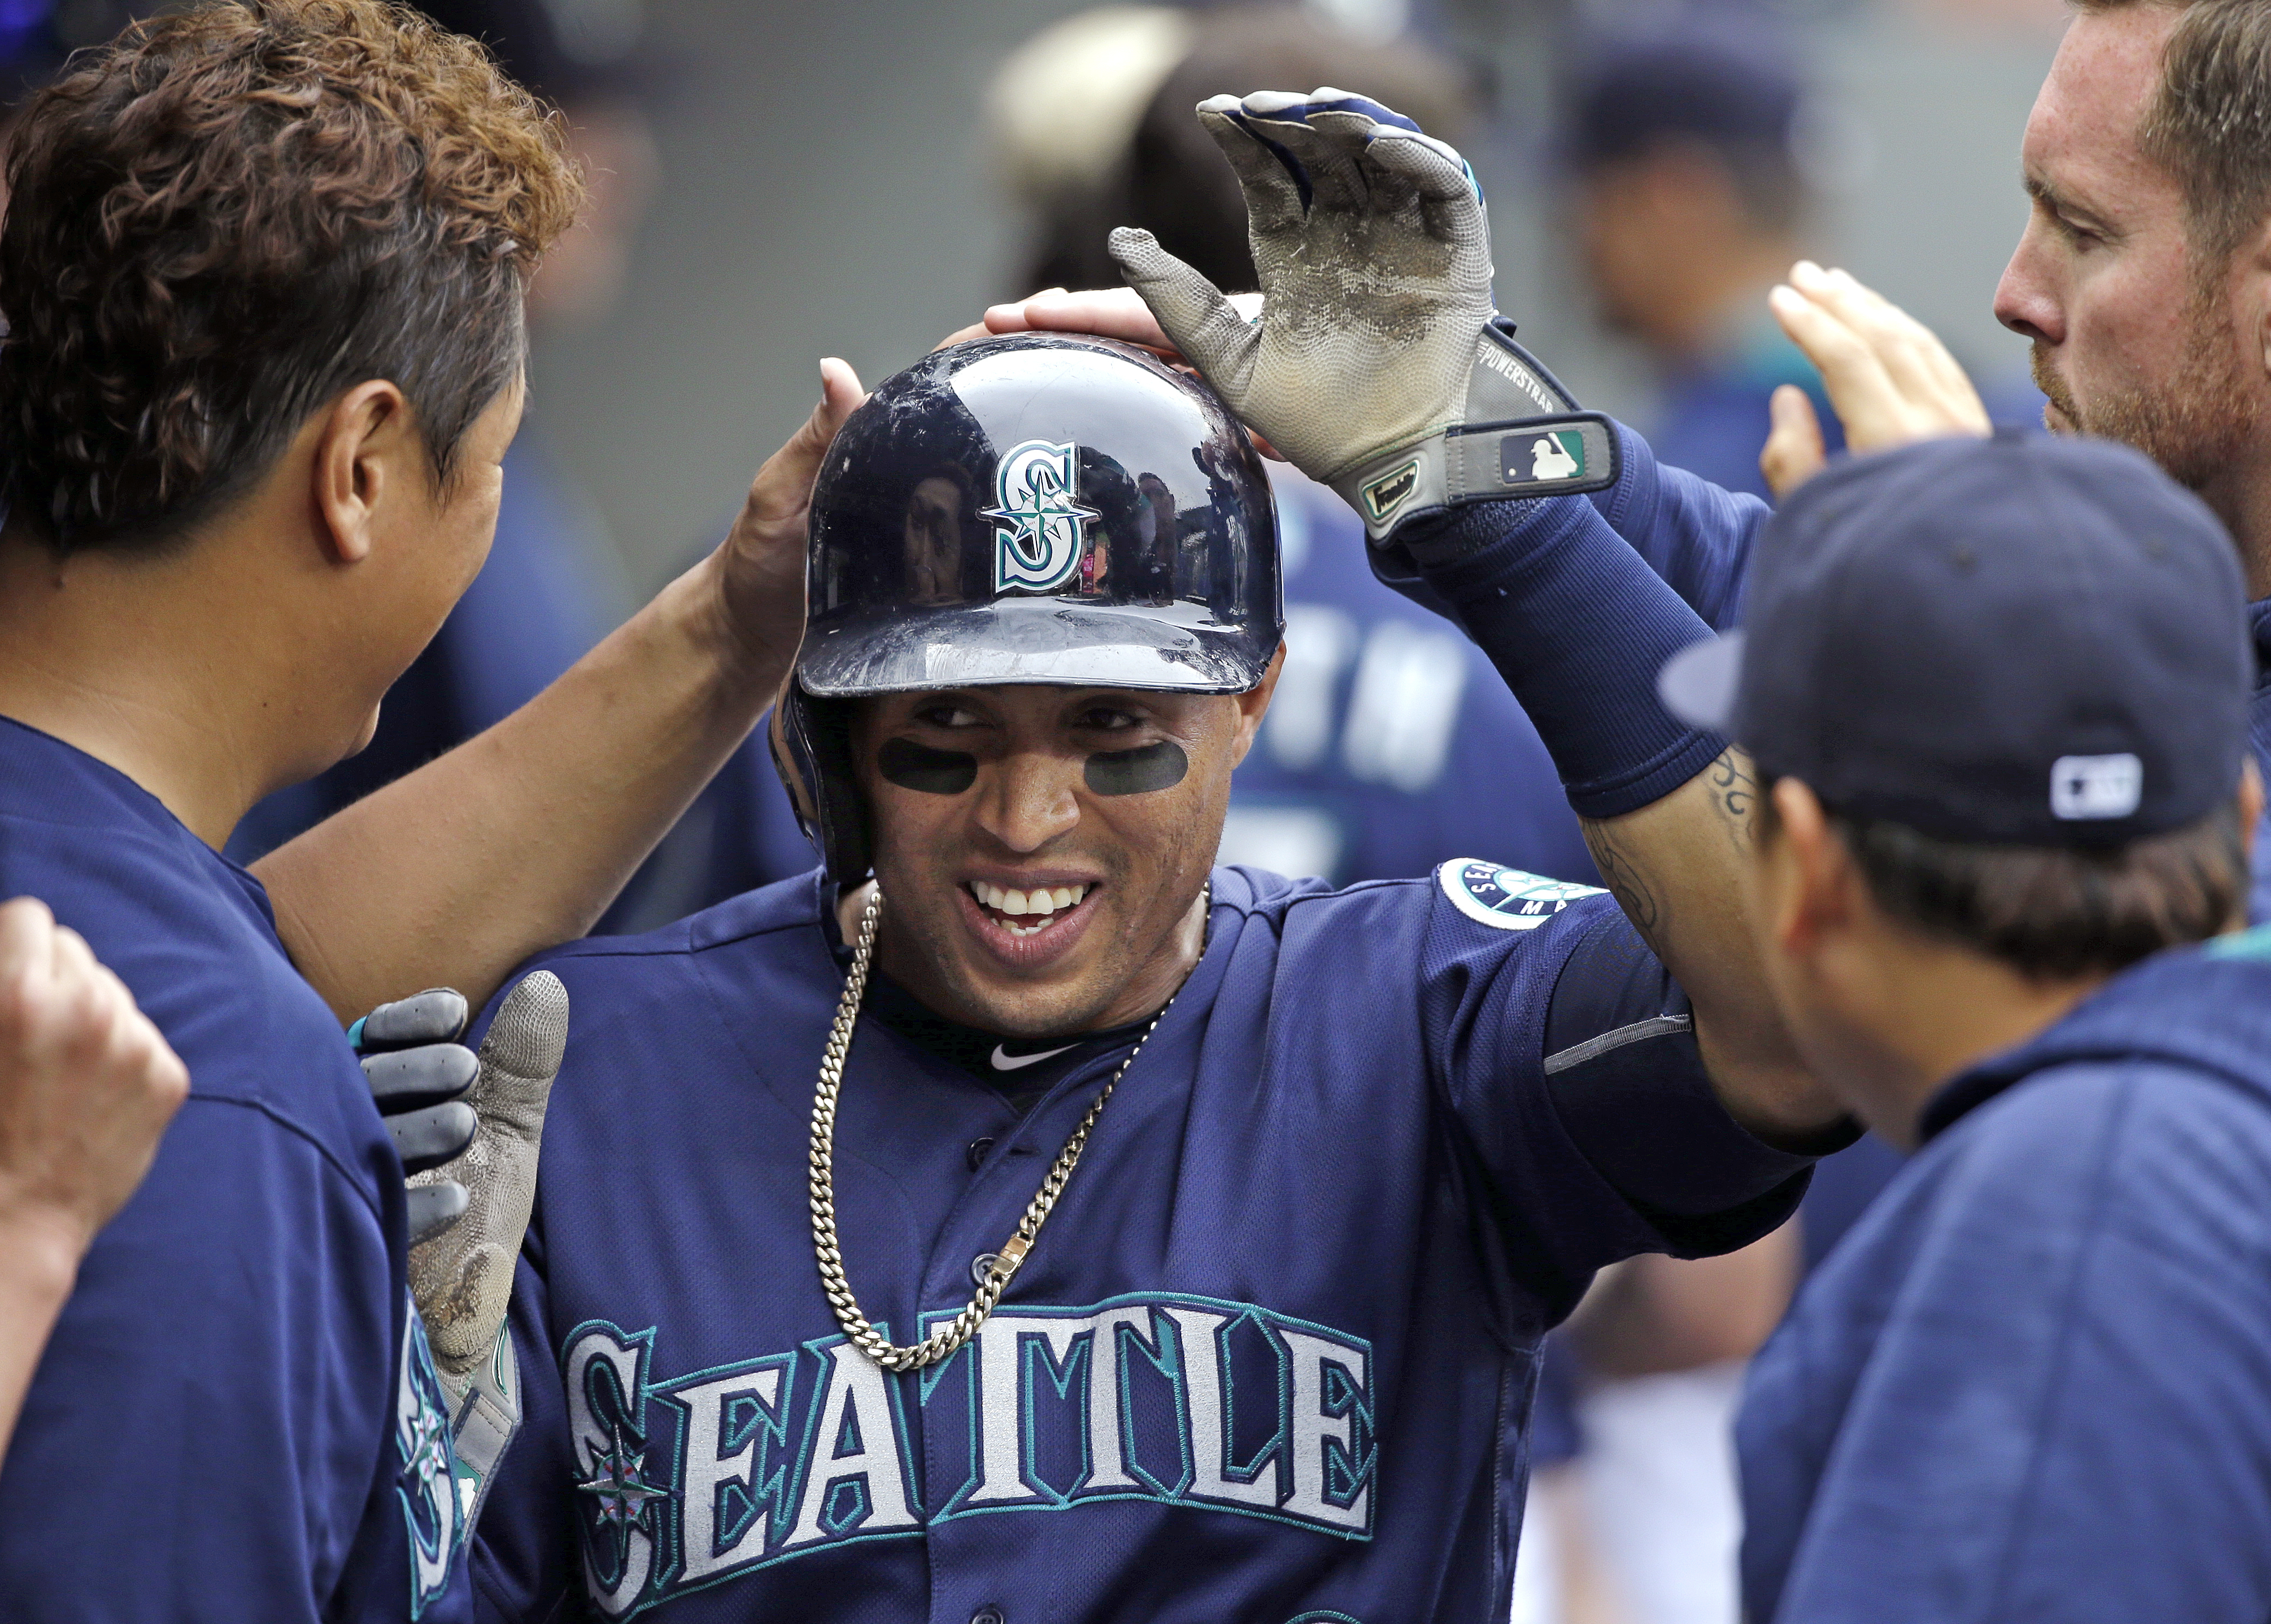 Seattle Mariners' Leonys Martin is congratulated by teammates after scoring against the Texas Rangers during the sixth inning of a baseball game Monday, Sept. 5, 2016, in Seattle. (AP Photo/Elaine Thompson)